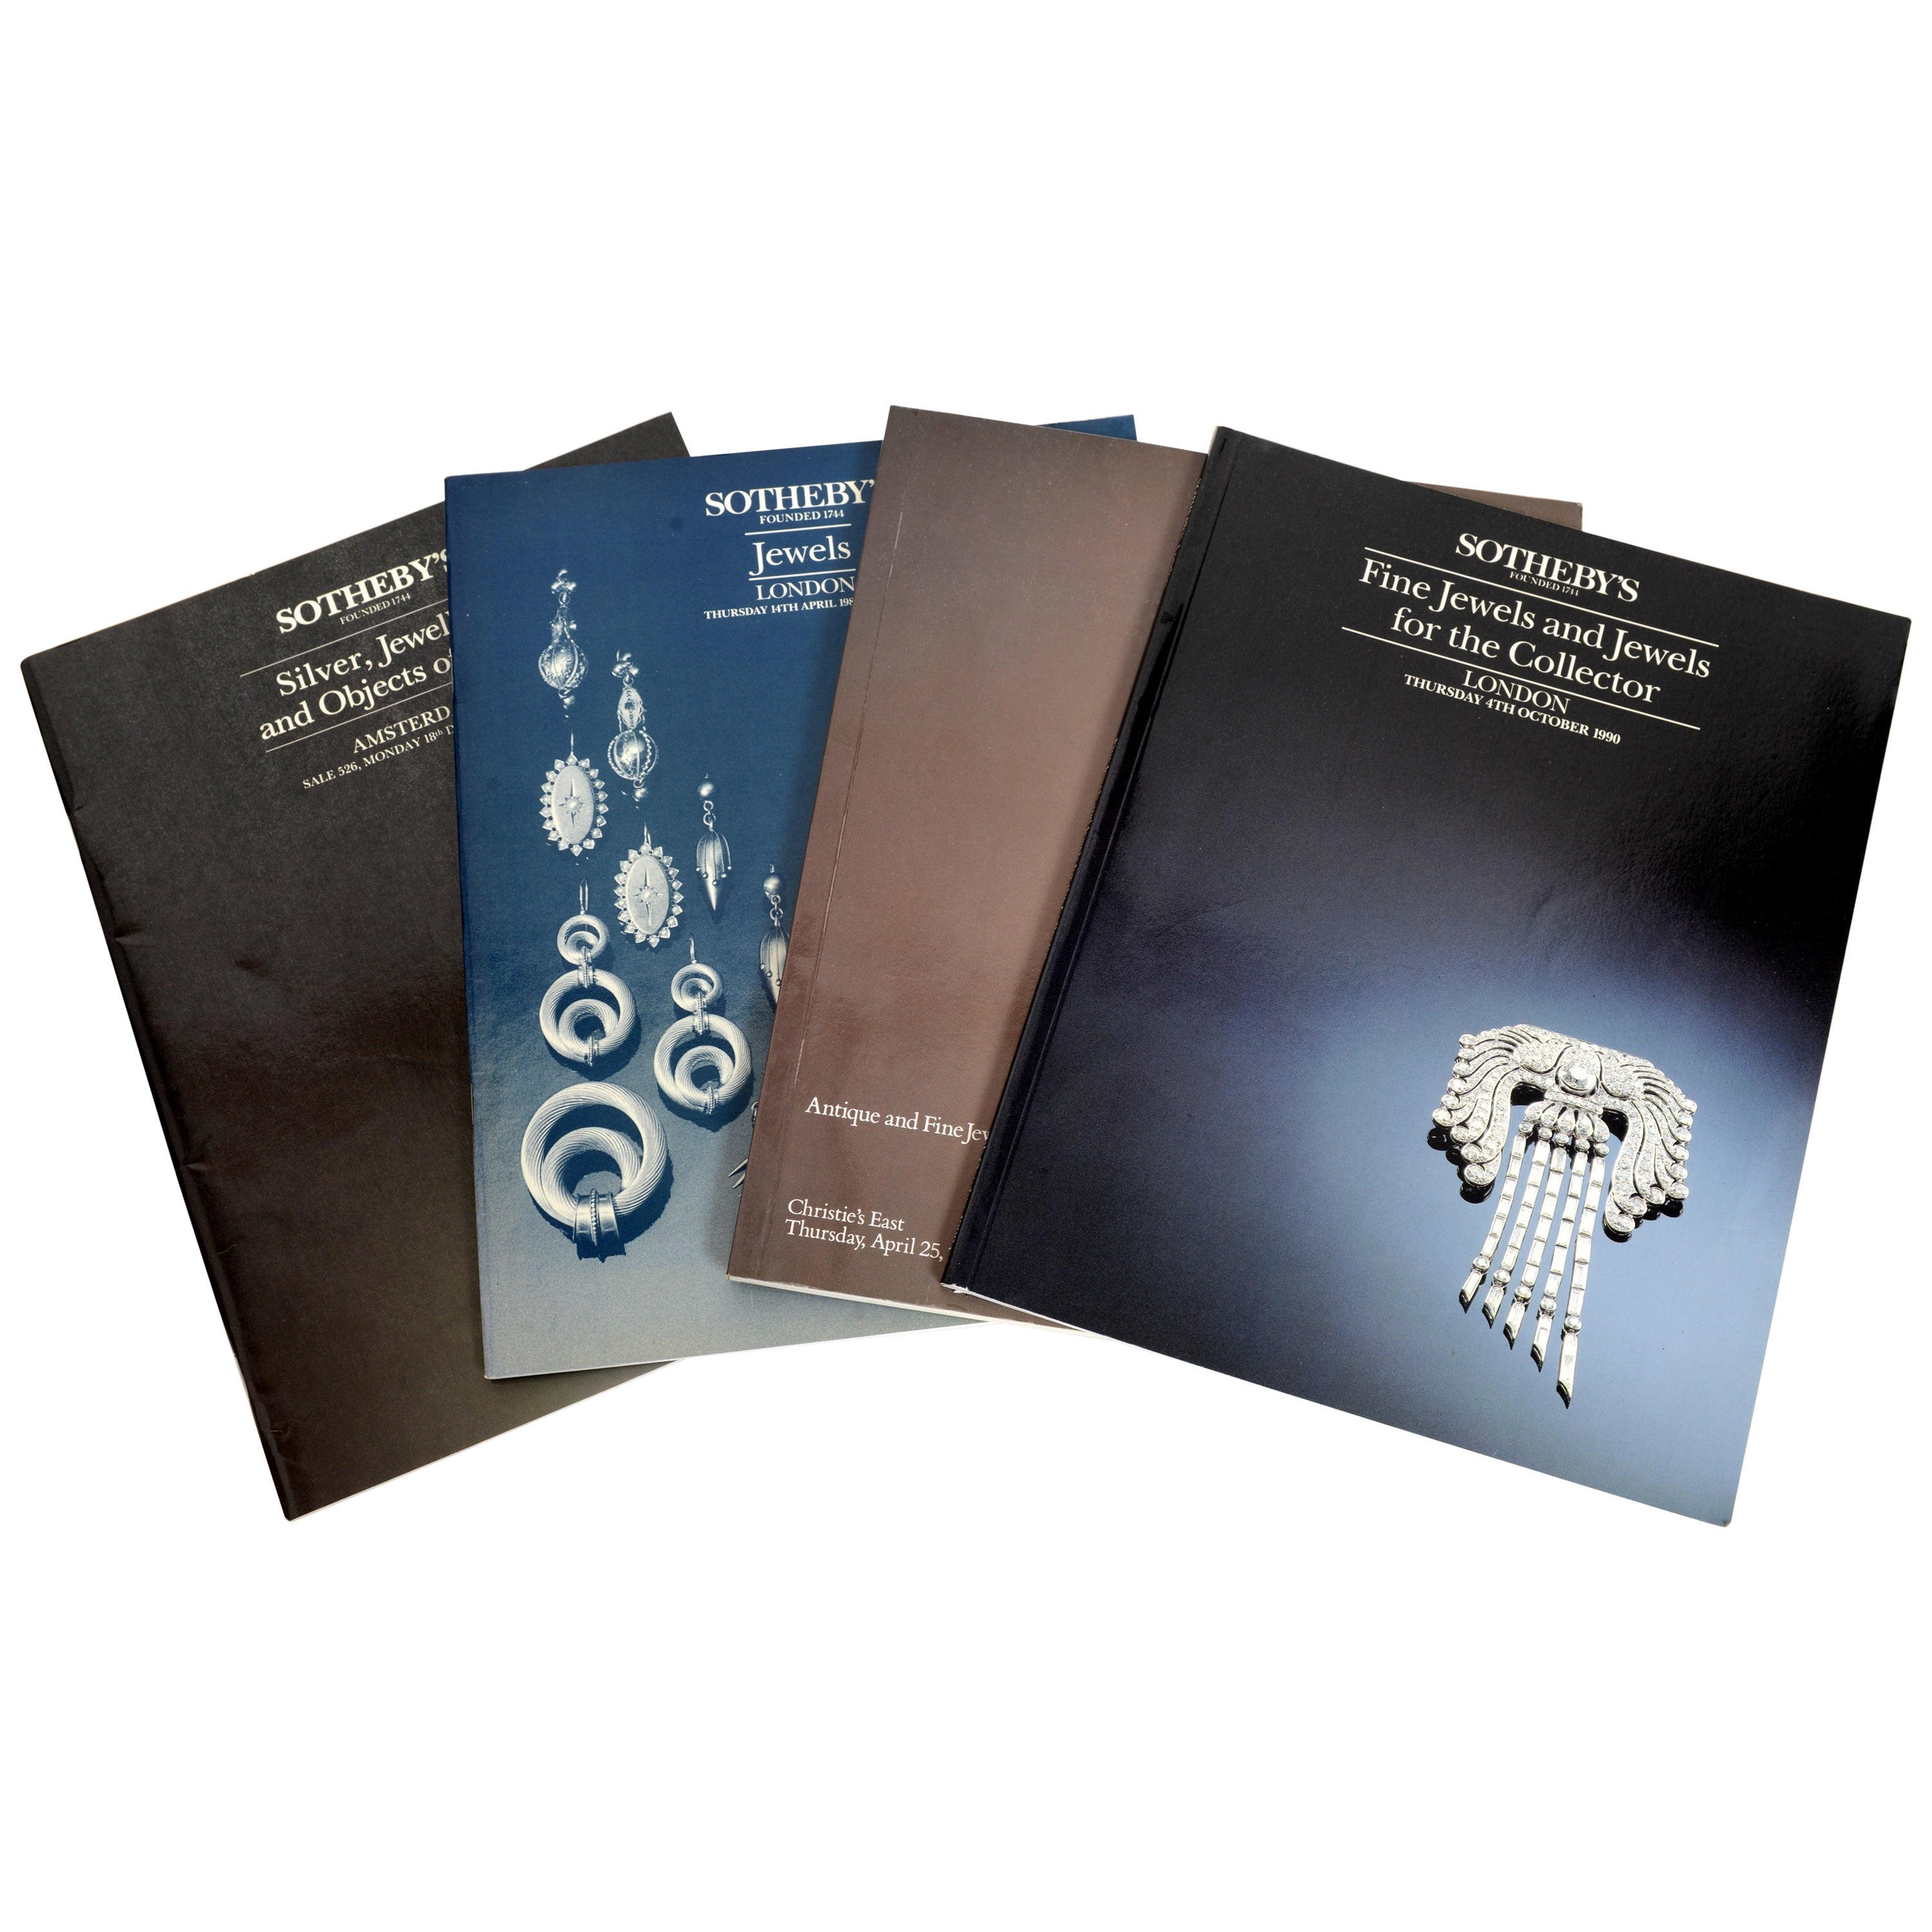 Set of 4 Jewelry Catalogues from Sotheby's & Christie's, First Edition